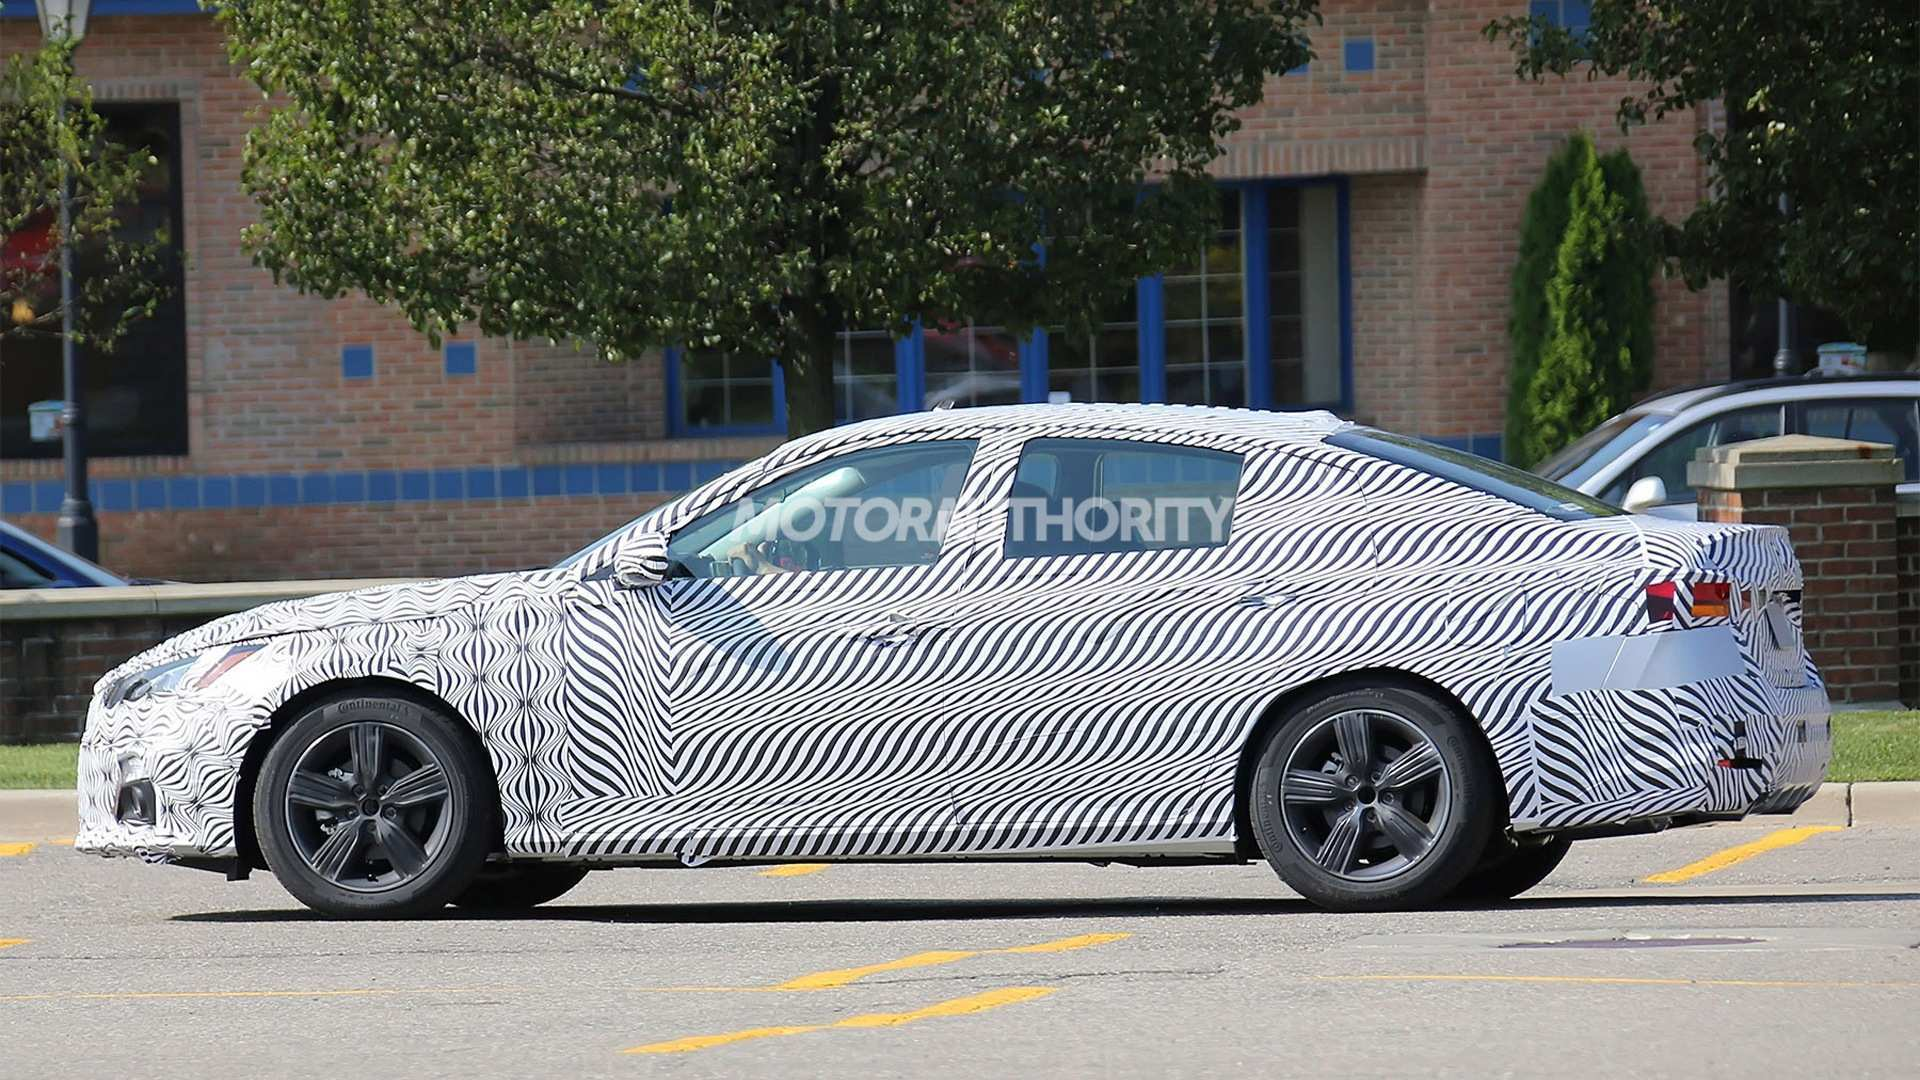 83 Concept of 2019 Nissan Altima Spy Shots Rumors with 2019 Nissan Altima Spy Shots